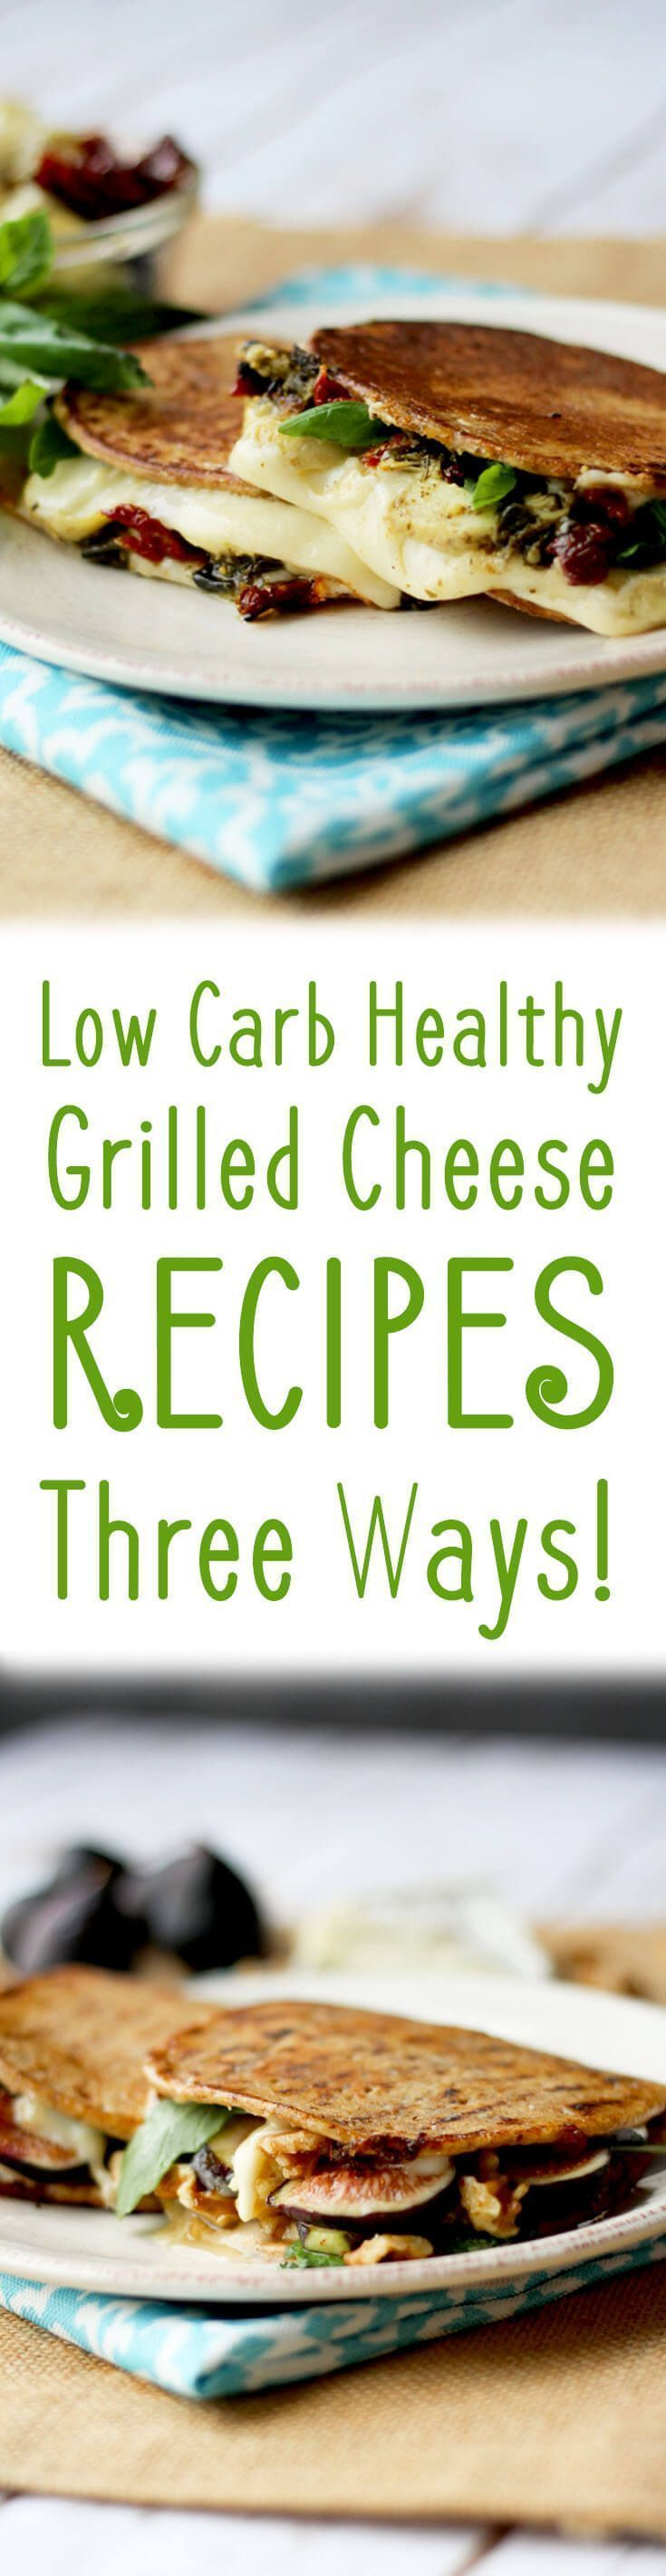 These three low carb healthy grilled cheese recipes will help you get your cheese fix without the carb load! Bring on the cheese, lovelies!